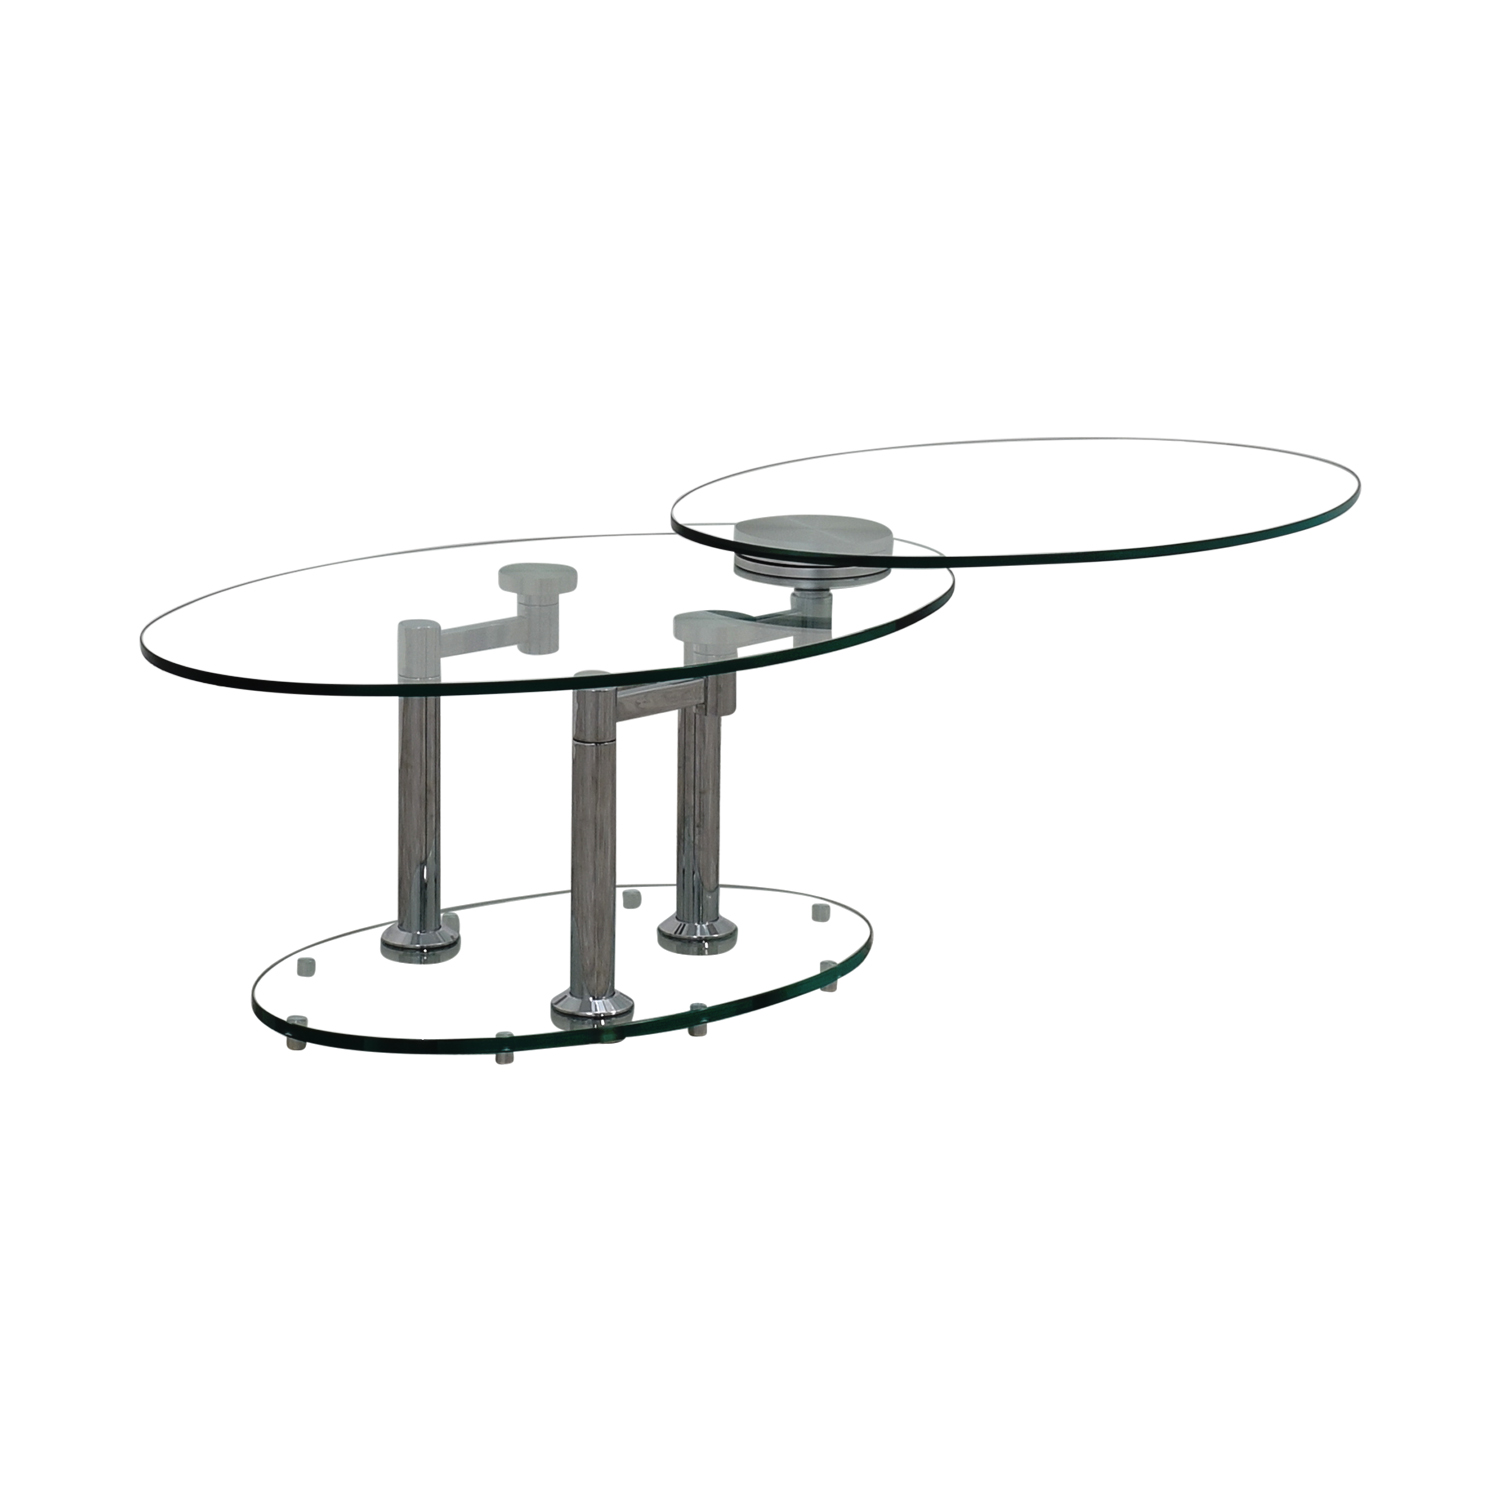 OFF Art Deco Movable Oval Glass & Metal Coffee Table